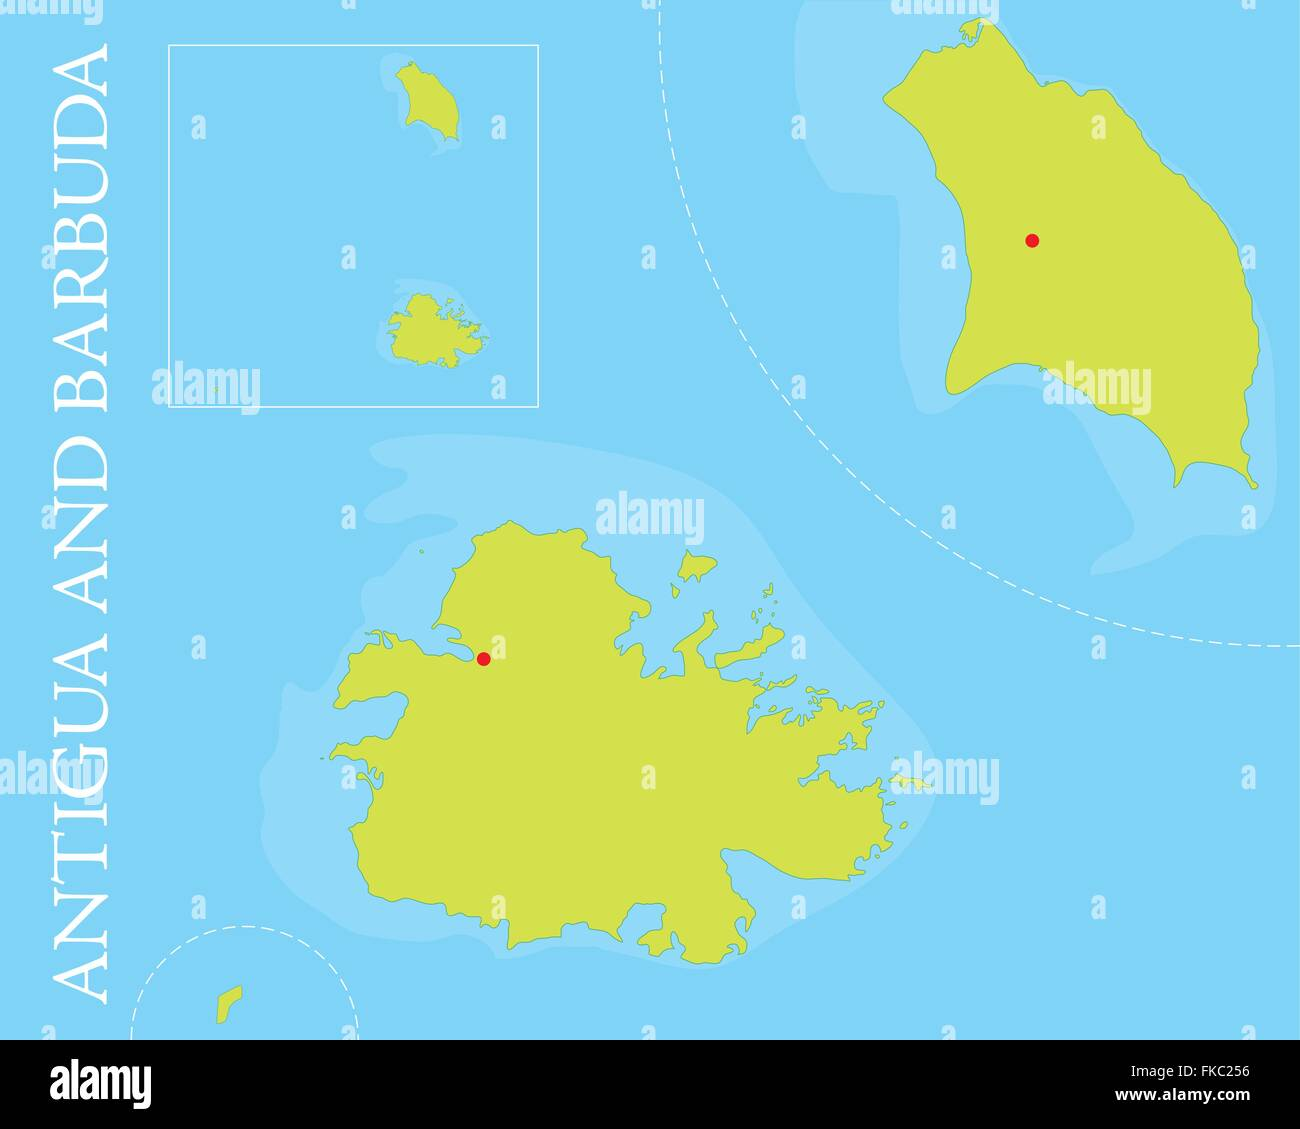 Map of Antigua and Barbuda archipelago in the Caribbean Sea Stock